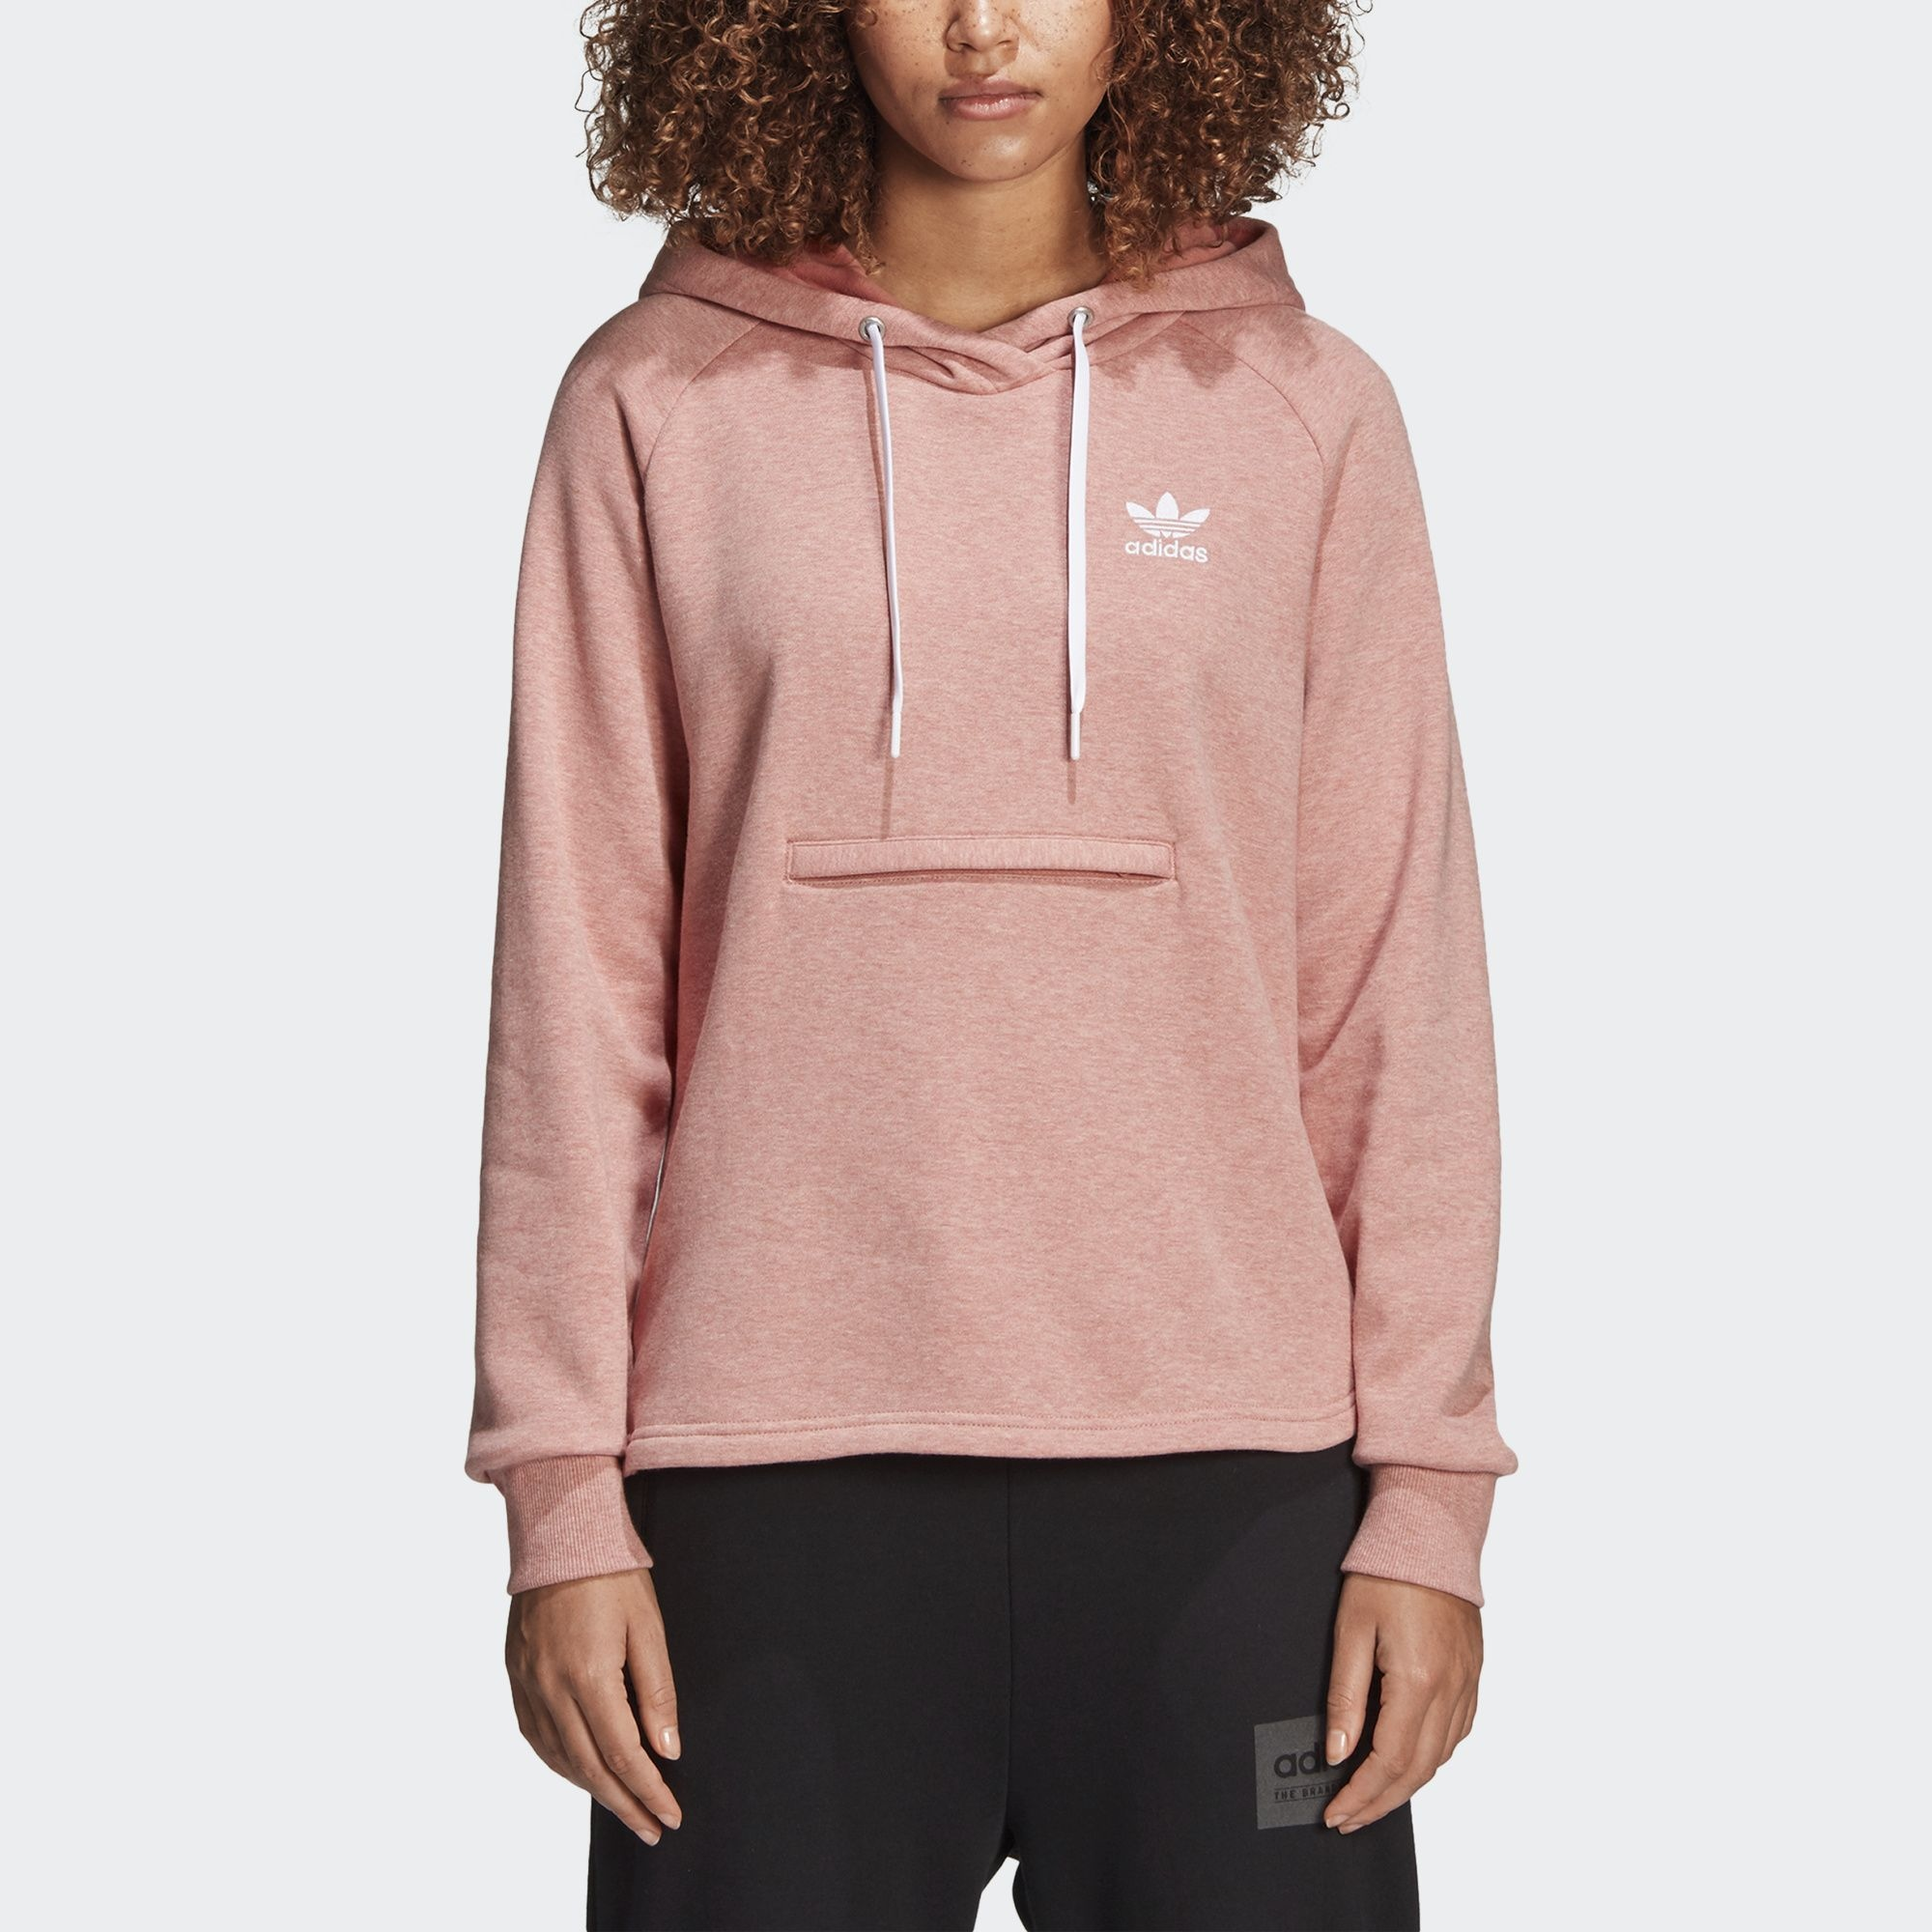 0f702c21795a7c adidas Originals Trefoil Pink Pullover Hoodie Women Hoody Zip Pocket|  BR6364. All sizes listed are UK. See sizing tab below for conversions.